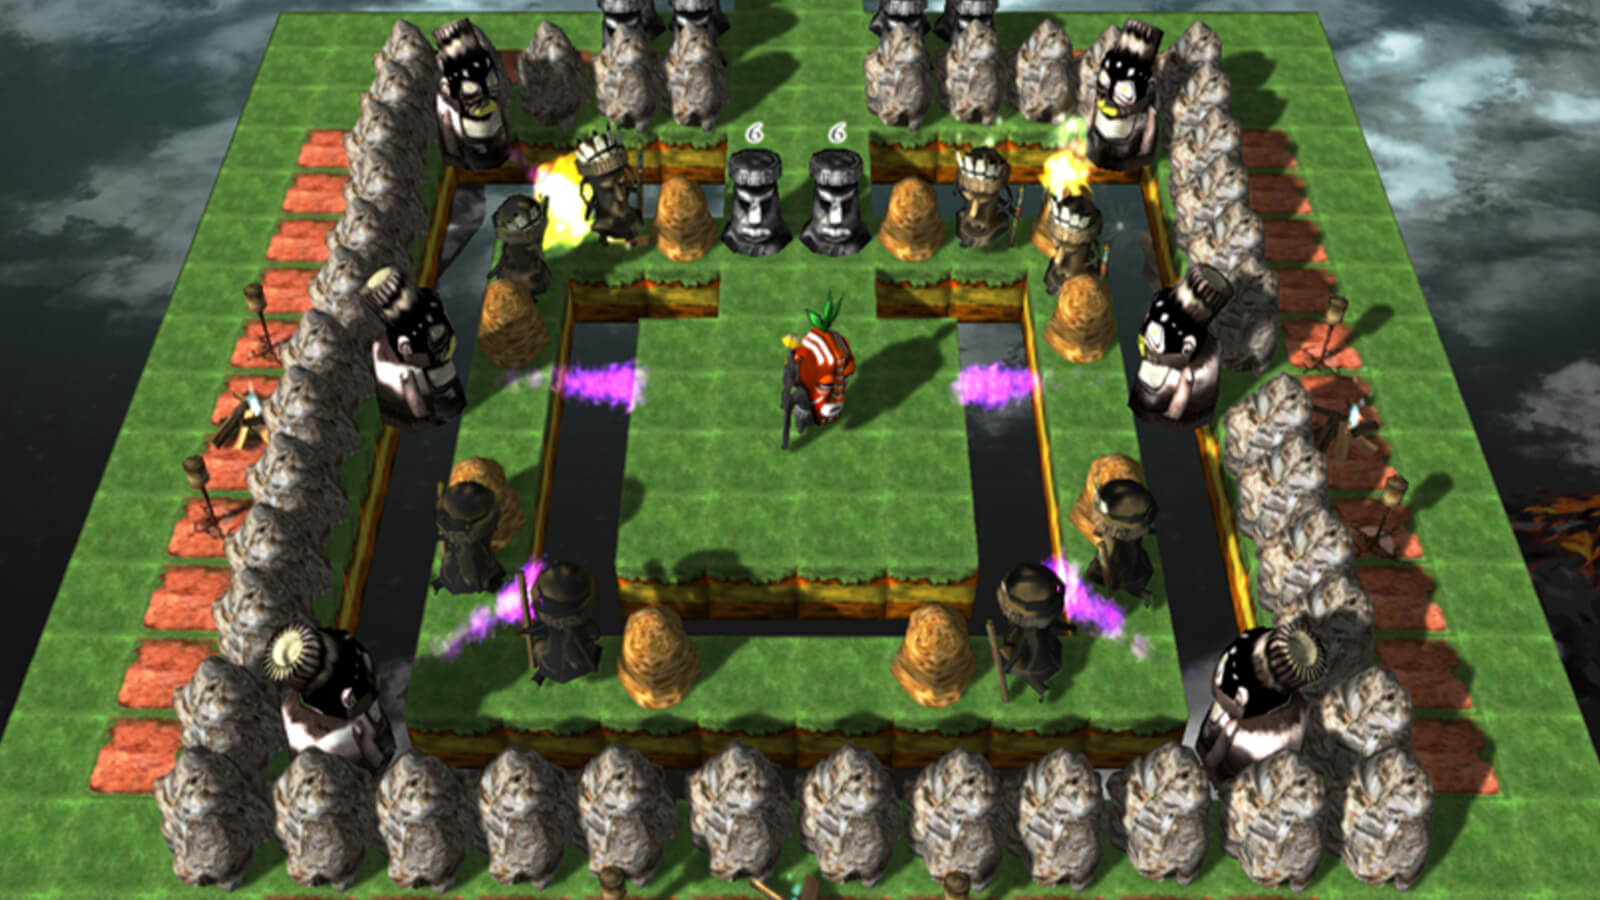 The player's character stands at the center of a green platform in the sky surrounded by rows of enemies